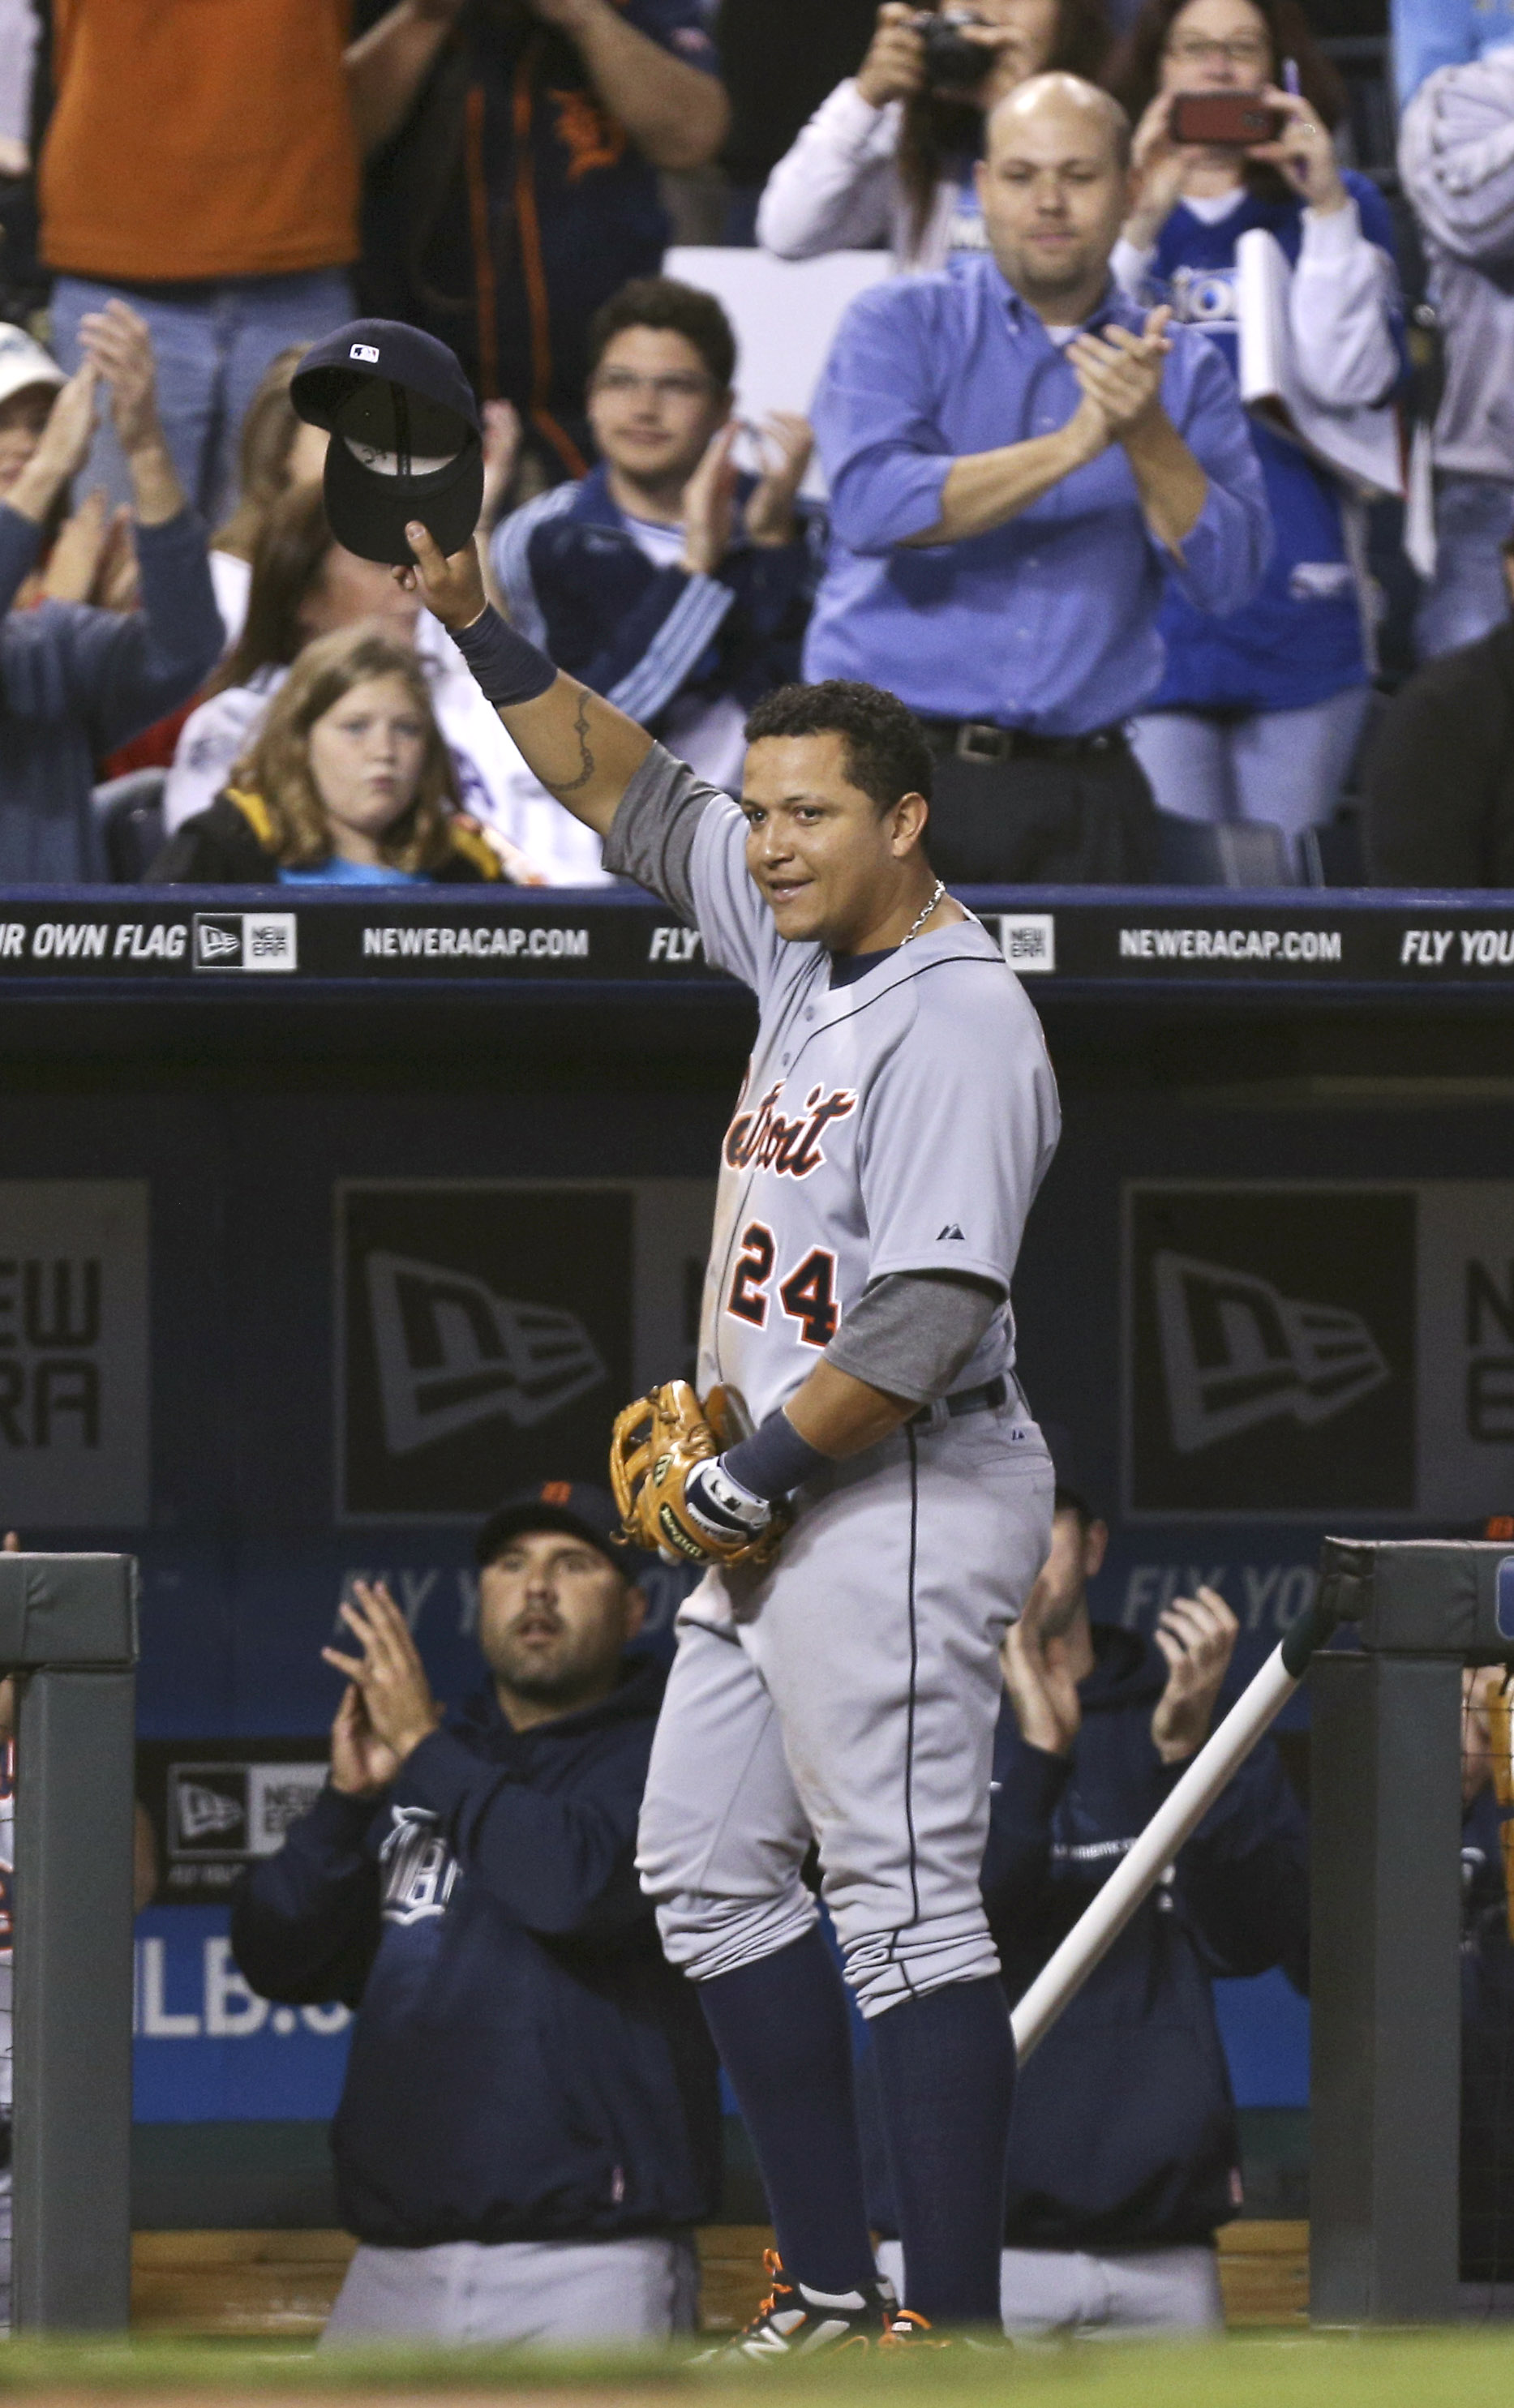 Miguel Cabrera's dream season of 2012 included a Triple Crown and AL MVP award. (Getty Images)